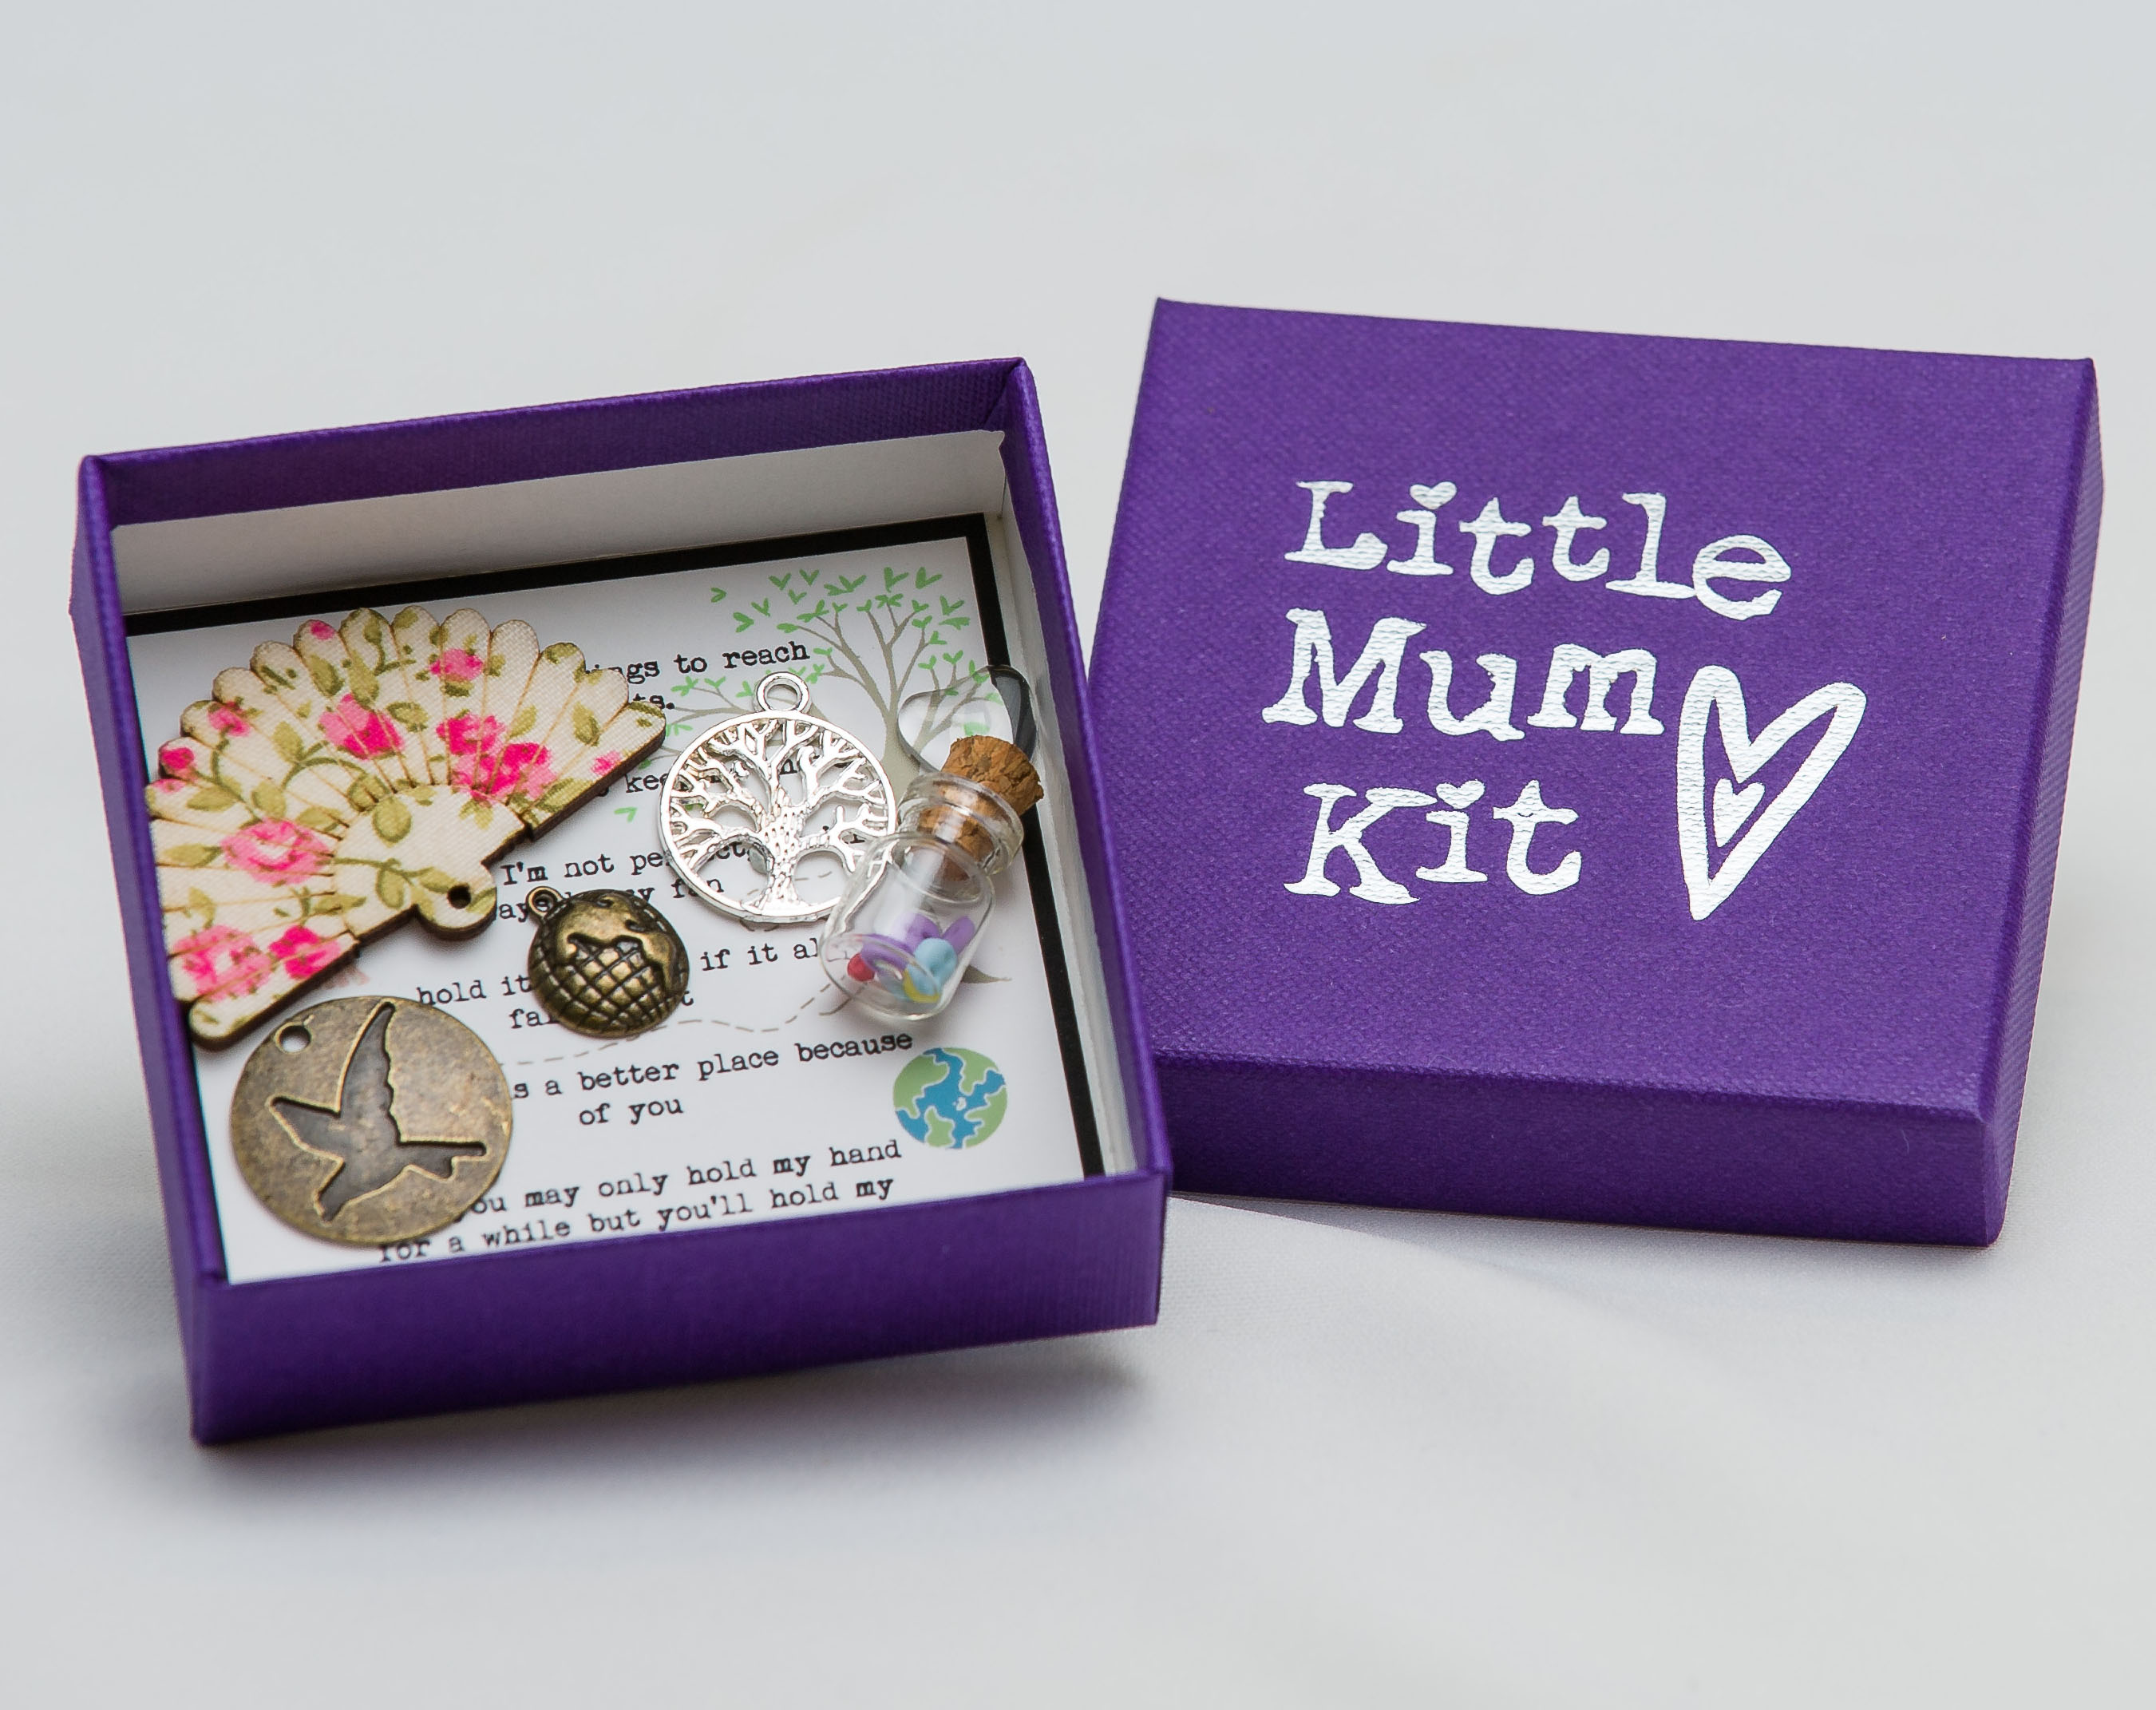 Little Mum Kit